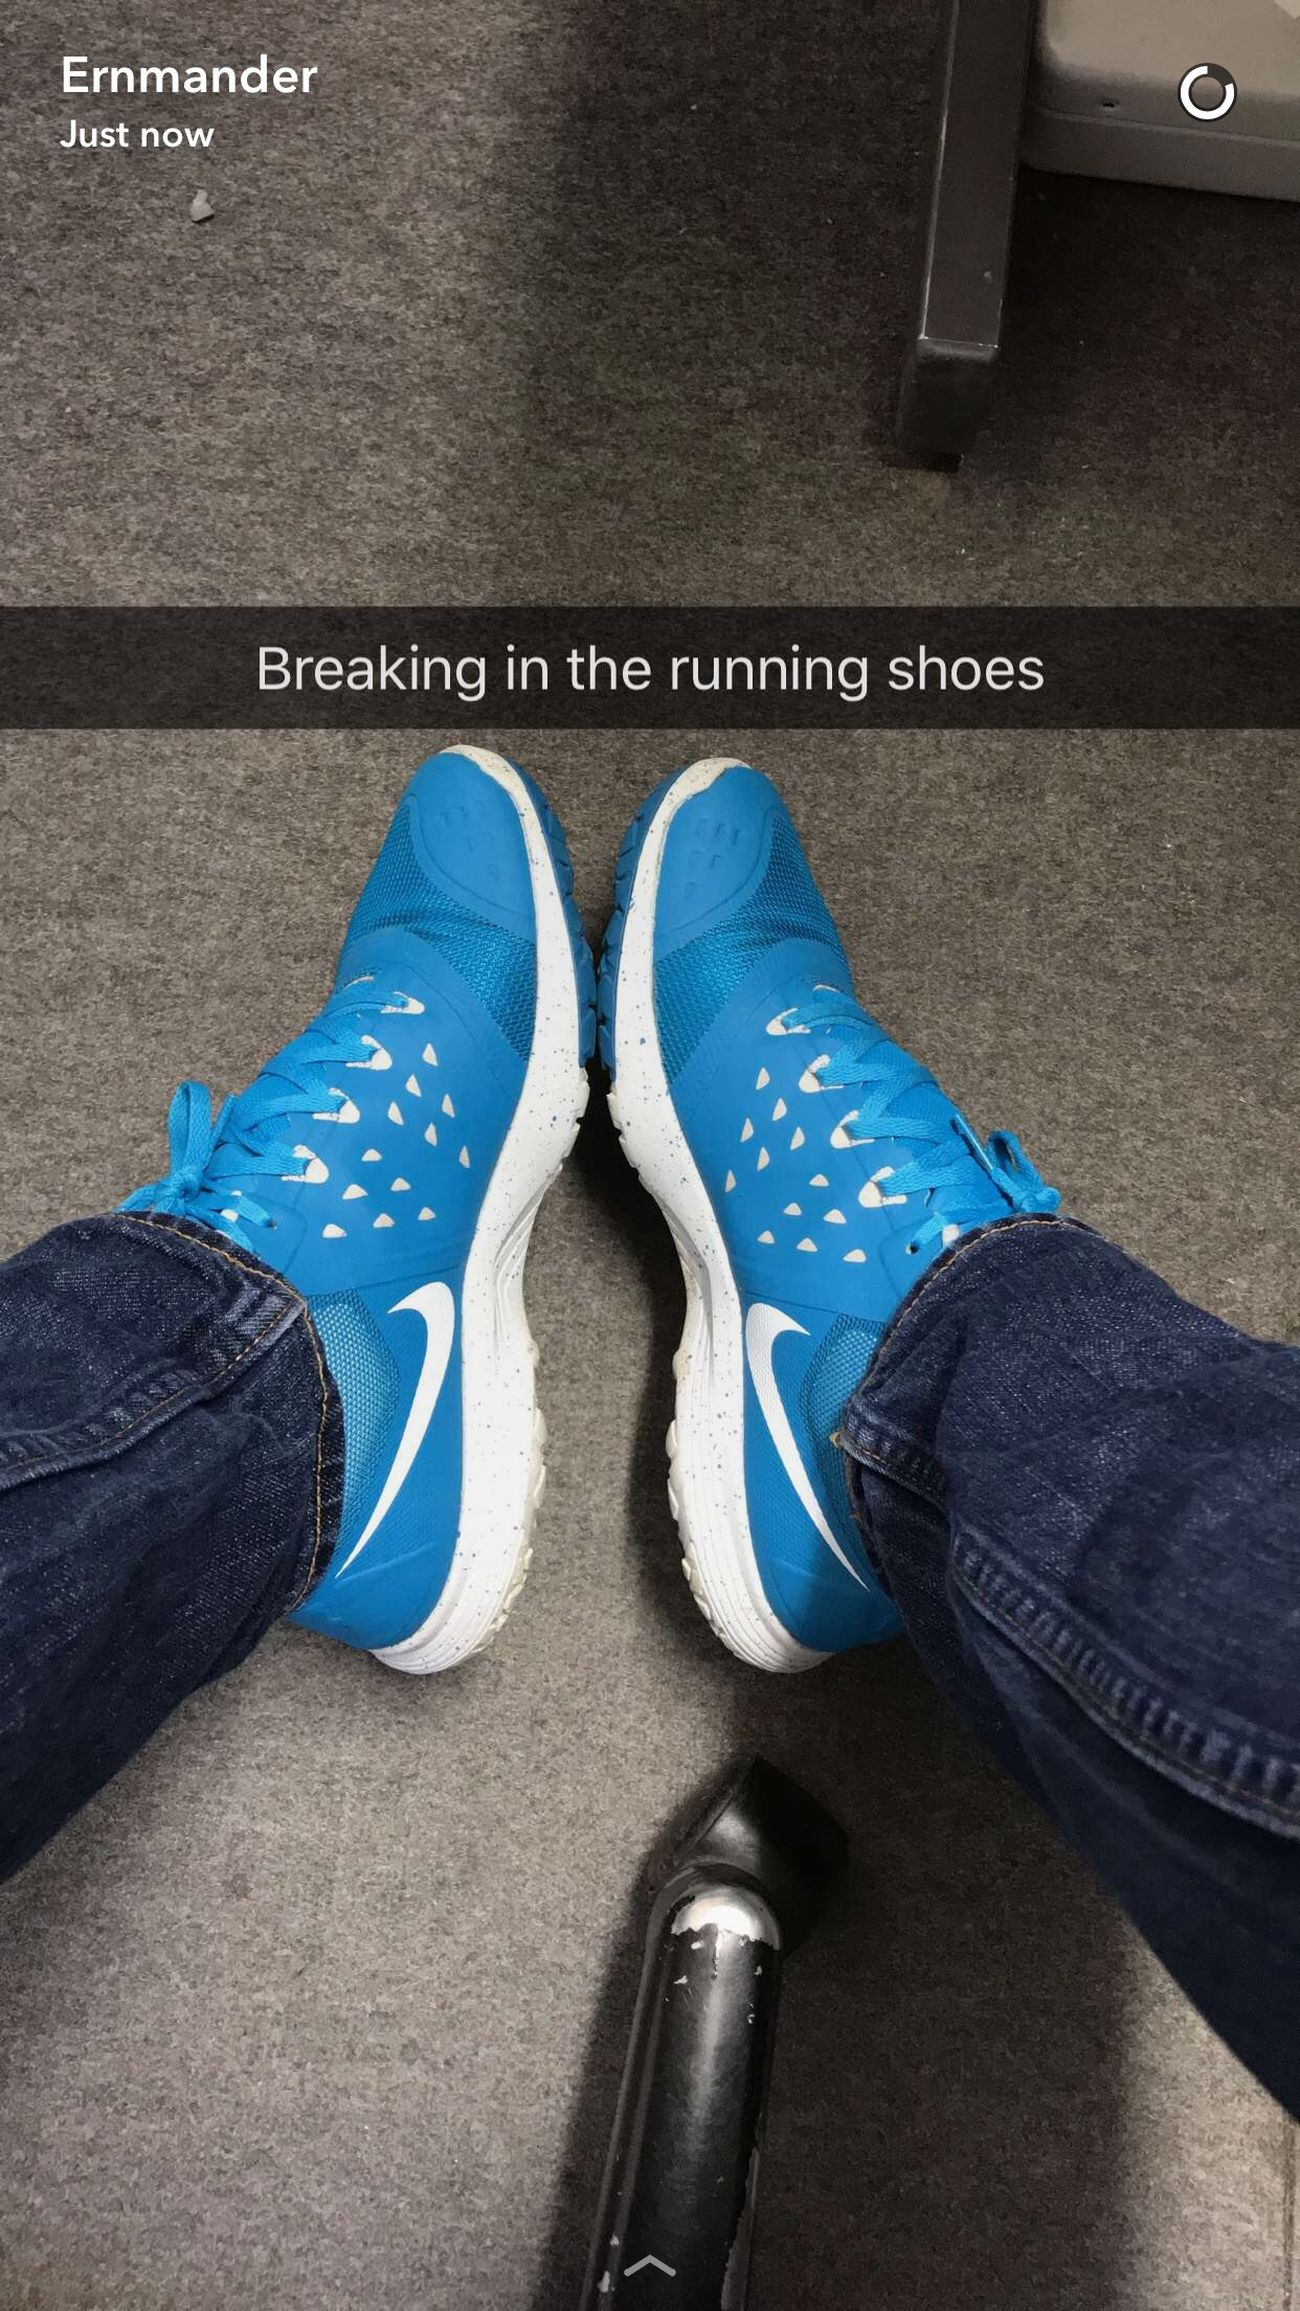 Today's @snapchat Snapchat Snapchatstory includes Nike and breaking in :)